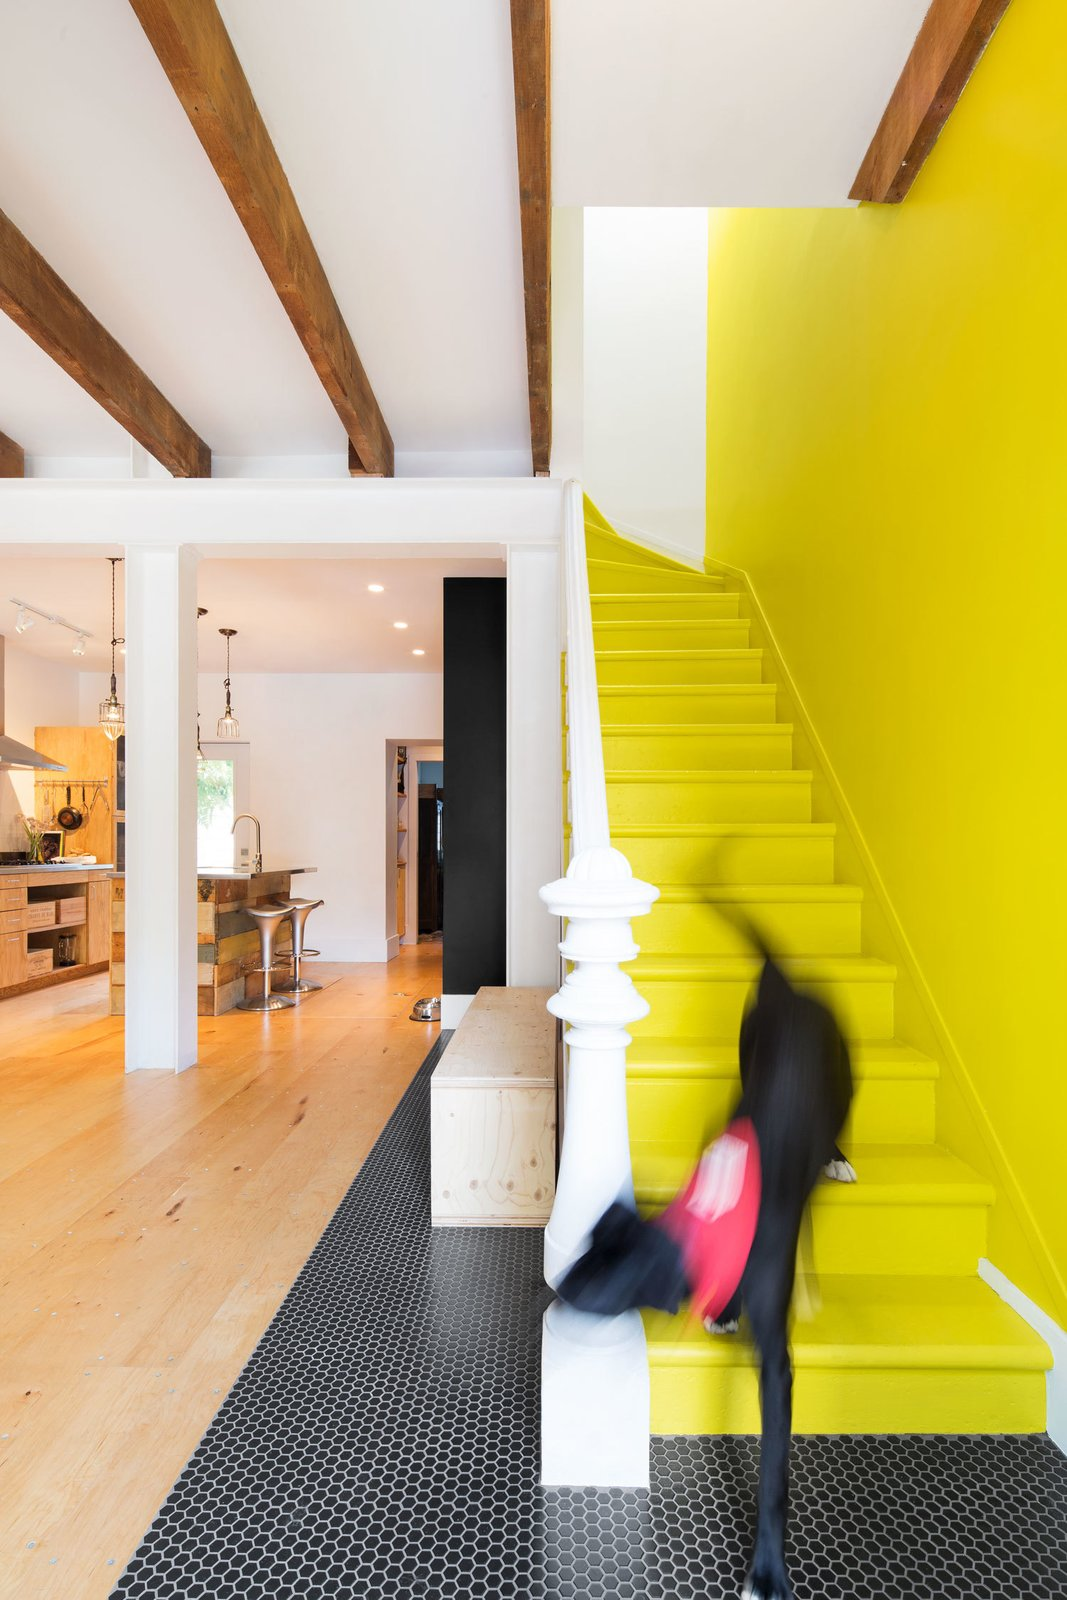 """I always wanted to have my very own yellow brick road,"" says Viviana de Loera, whose favorite part of the home is the playful staircase. The original stairs and handrail were preserved in the renovation. Tagged: Staircase, Wood Tread, and Wood Railing.  Photo 9 of 25 in 25 Bold Ways to Decorate with Yellow from How to Decorate With Yellow (Without the Smiley-Face Connotations)"